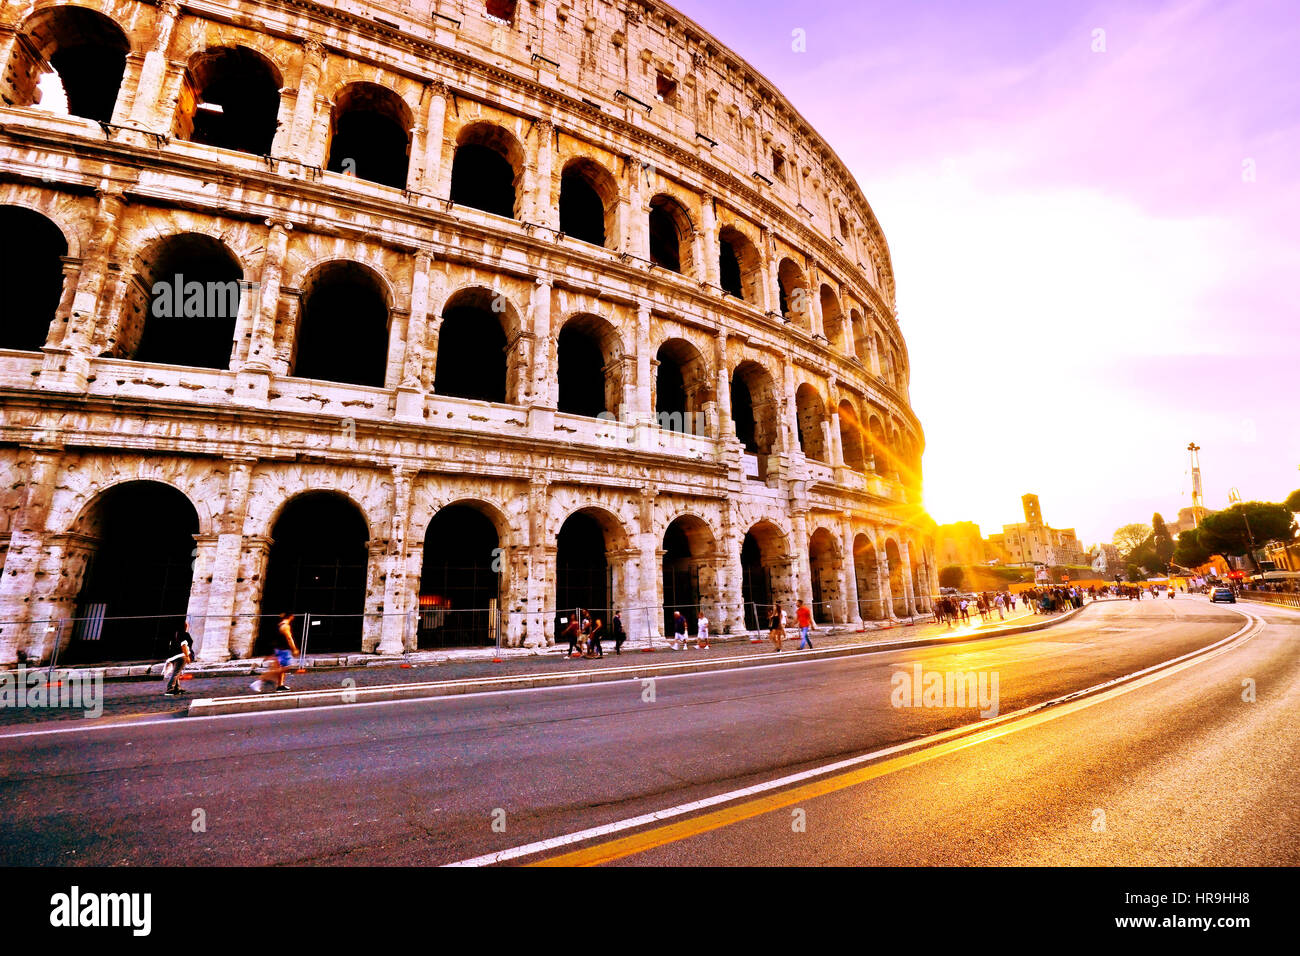 View of Colosseum at sunset in Rome, Italy. - Stock Image